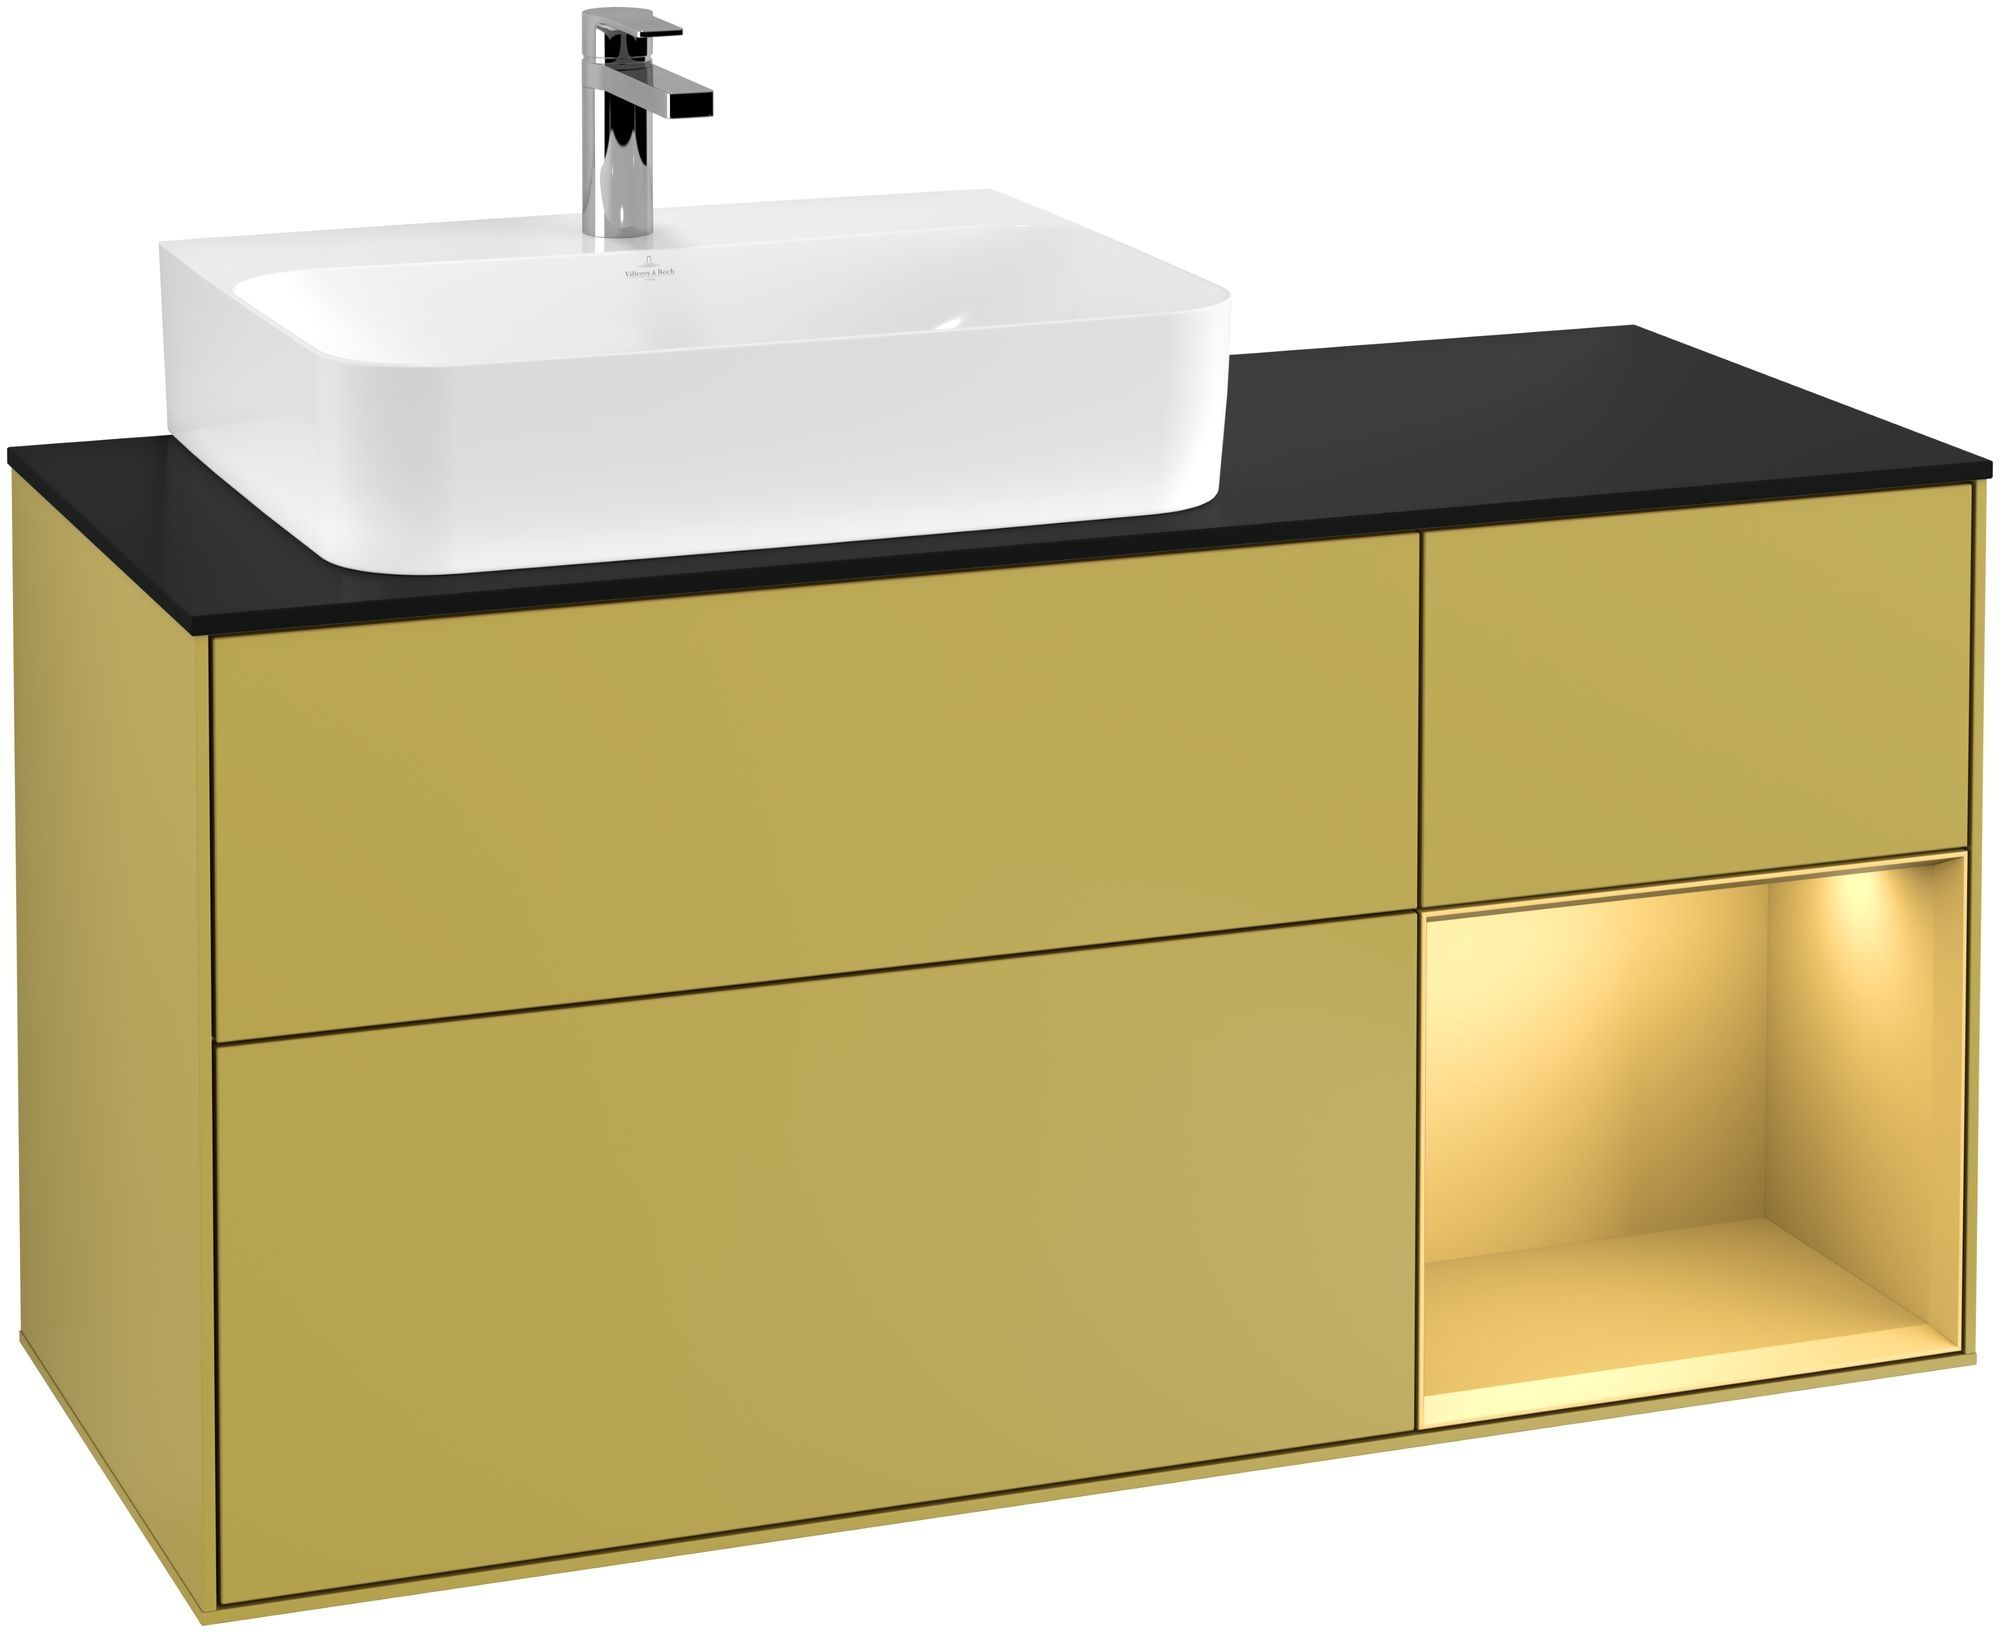 Villeroy & Boch Finion G15 Waschtischunterschrank mit Regalelement 3 Auszüge Waschtisch links LED-Beleuchtung B:120xH:60,3xT:50,1cm Front, Korpus: Sun, Regal: Gold Matt, Glasplatte: Black Matt G152HFHE